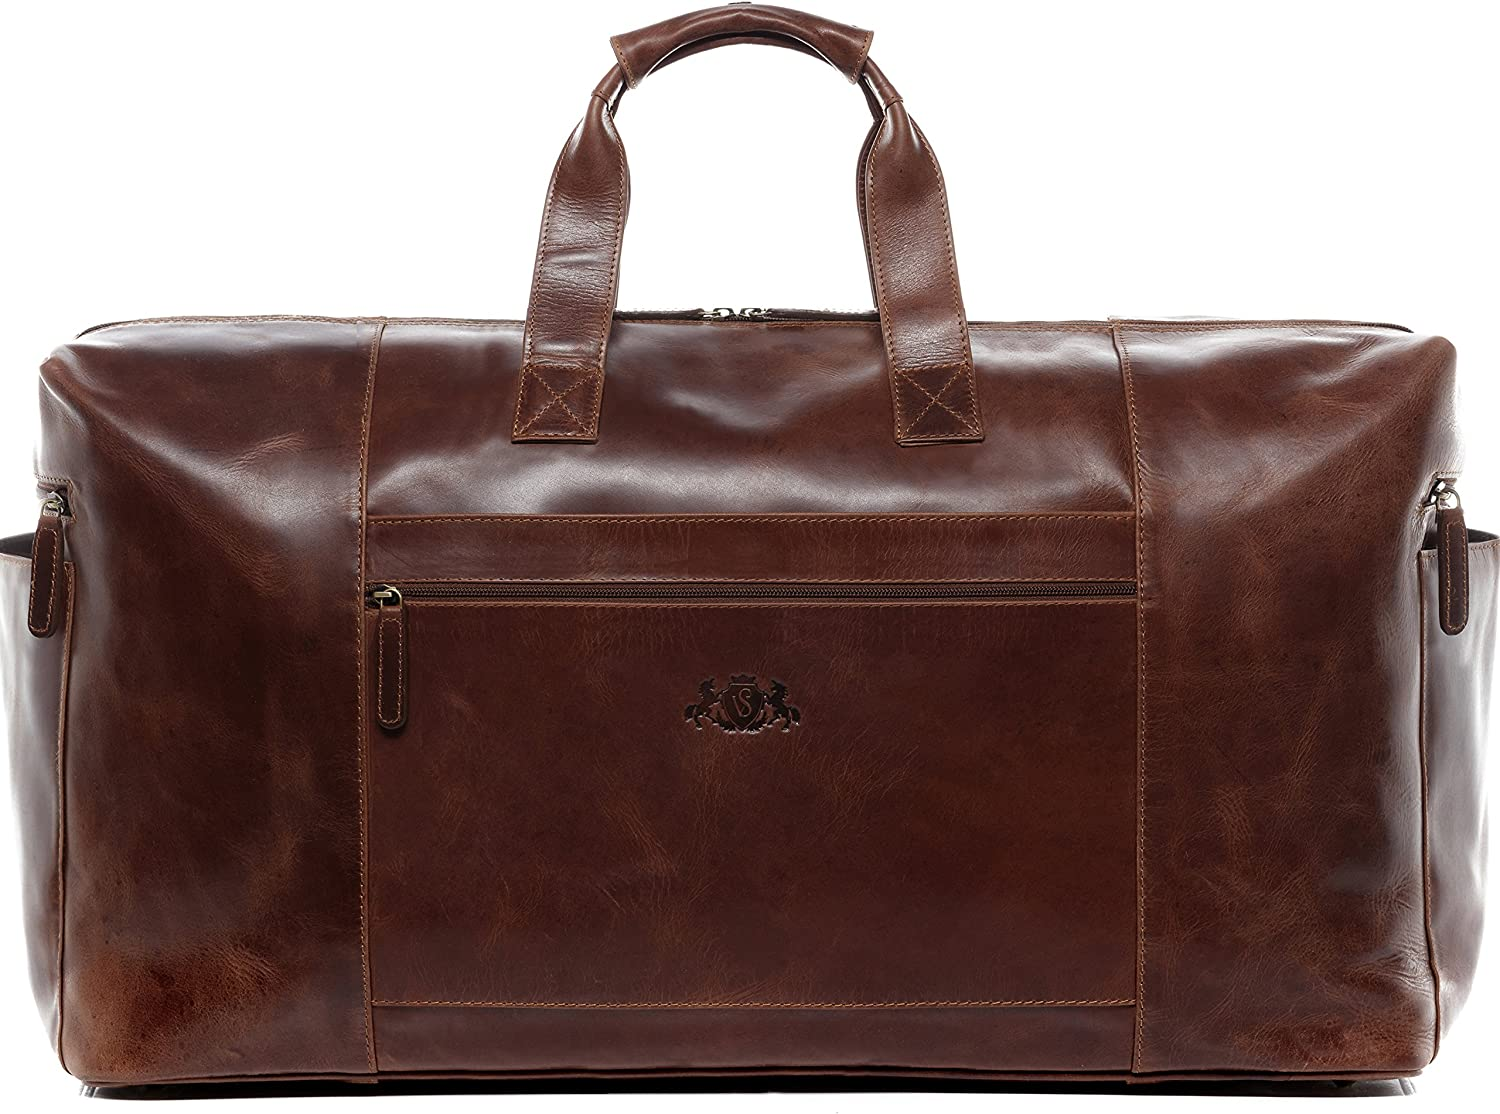 SID VAIN leather travel bag holdall BRISTOL XXL duffel bag weekender duffle